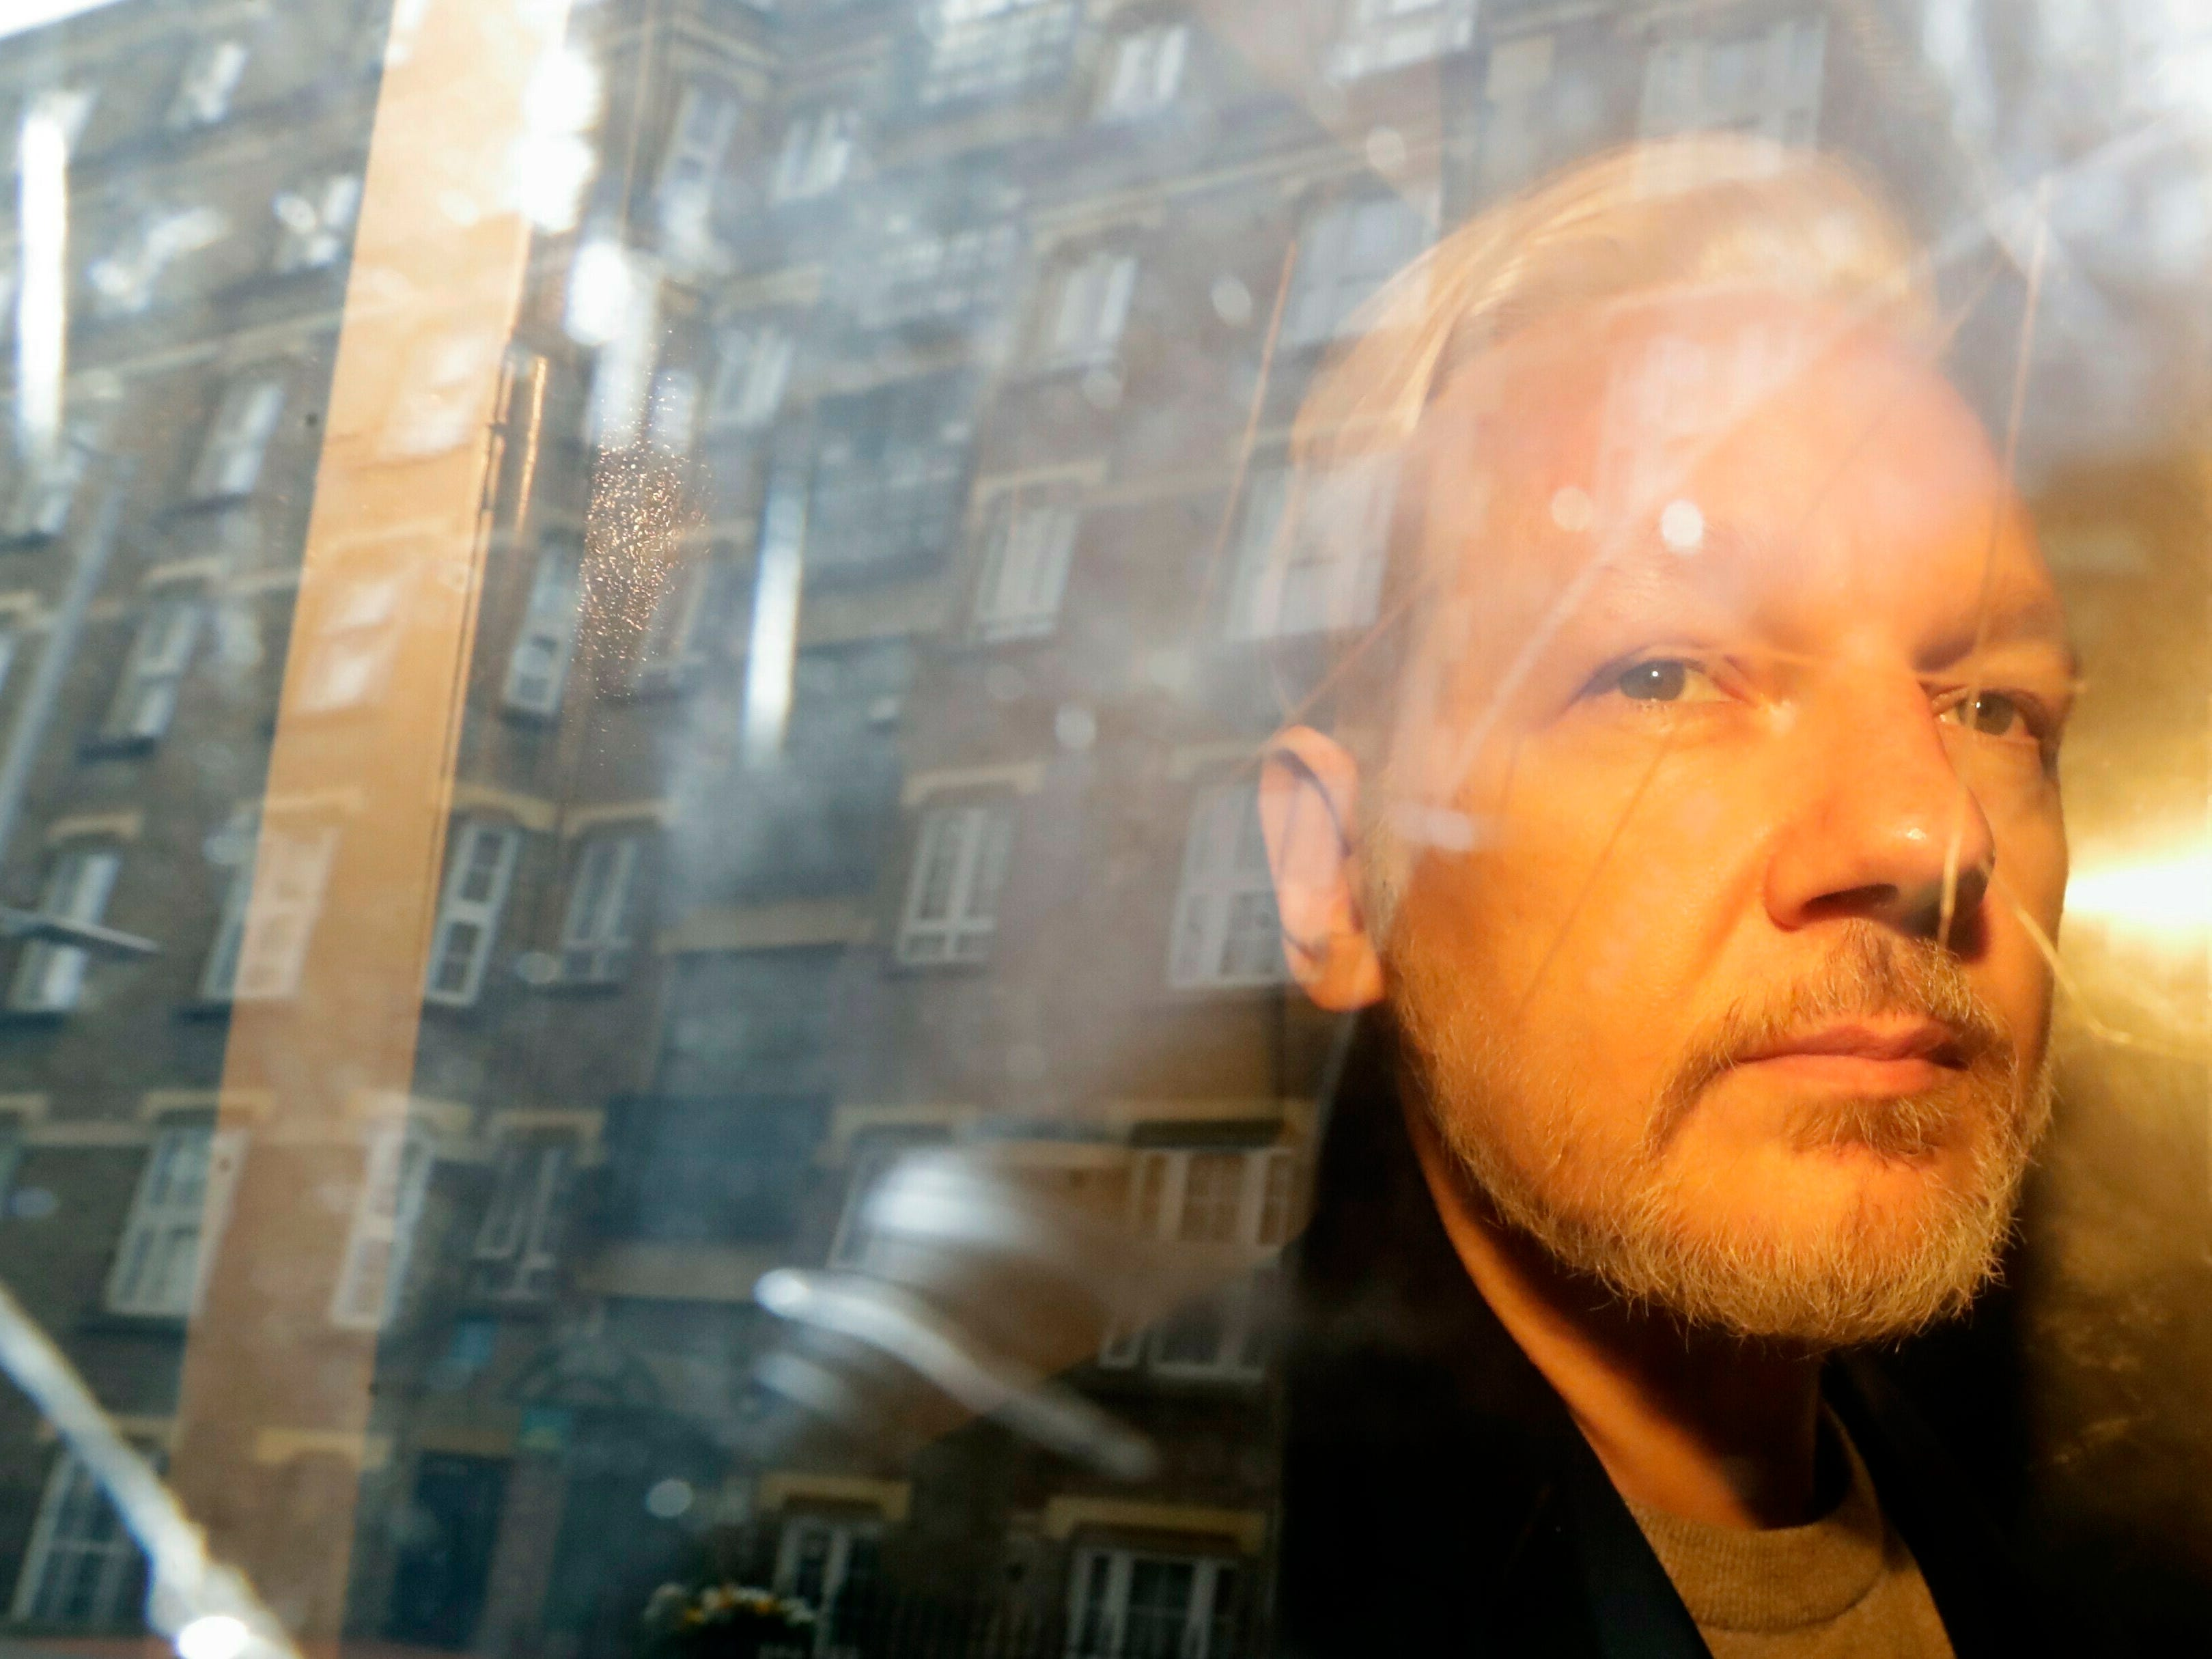 Buildings are reflected in the window as WikiLeaks founder Julian Assange is taken from court, where he appeared on charges of jumping British bail seven years ago, in London, Wednesday May 1, 2019. Assange has been jailed for 50 weeks for breaching his bail after going into hiding in the Ecuadorian embassy in London.